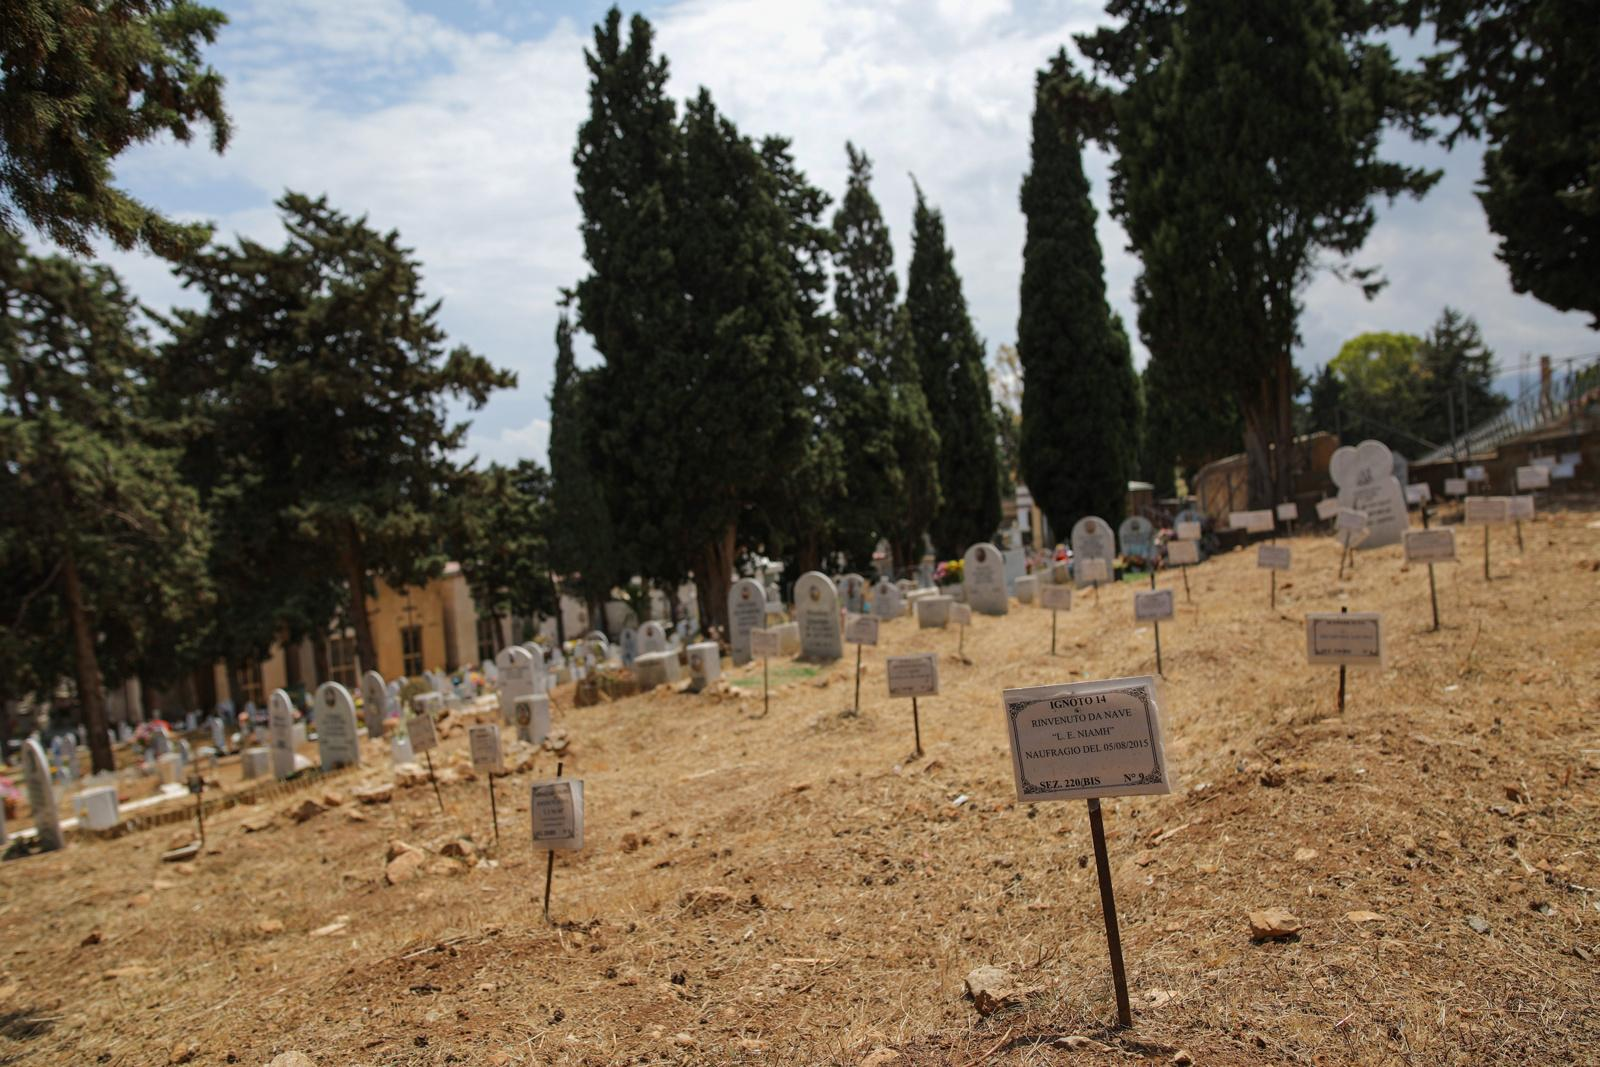 The department of migrants who died during the crossing of the Mediterranean Sea on the Graveyard Santa Maria dei Rotoli in Palermo, Sicily, Italy, June 06, 2017. The Central Mediterranean route is the world's deadliest migration route. Of the estimated 3,080 people that have died or gone missing while trying to reach Europe by sea via the three Mediterranean routes until end of November 2017, over 94% of deaths have occurred from North Africa to Italy, according to UNHCR. Over 117,000 refugees and migrants arrived in Italy by sea in 2017, about 32% less compared to 2016.